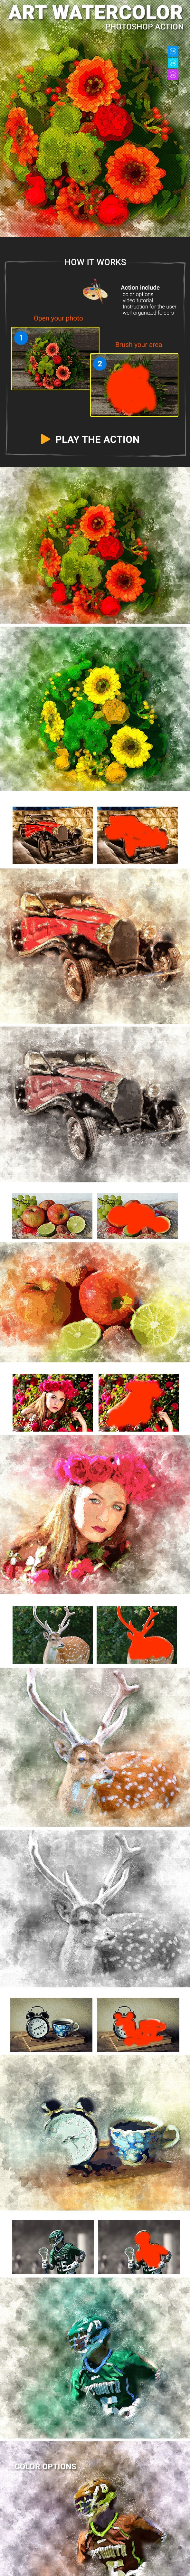 Art Watercolor Photoshop Action - Photo Effects Actions